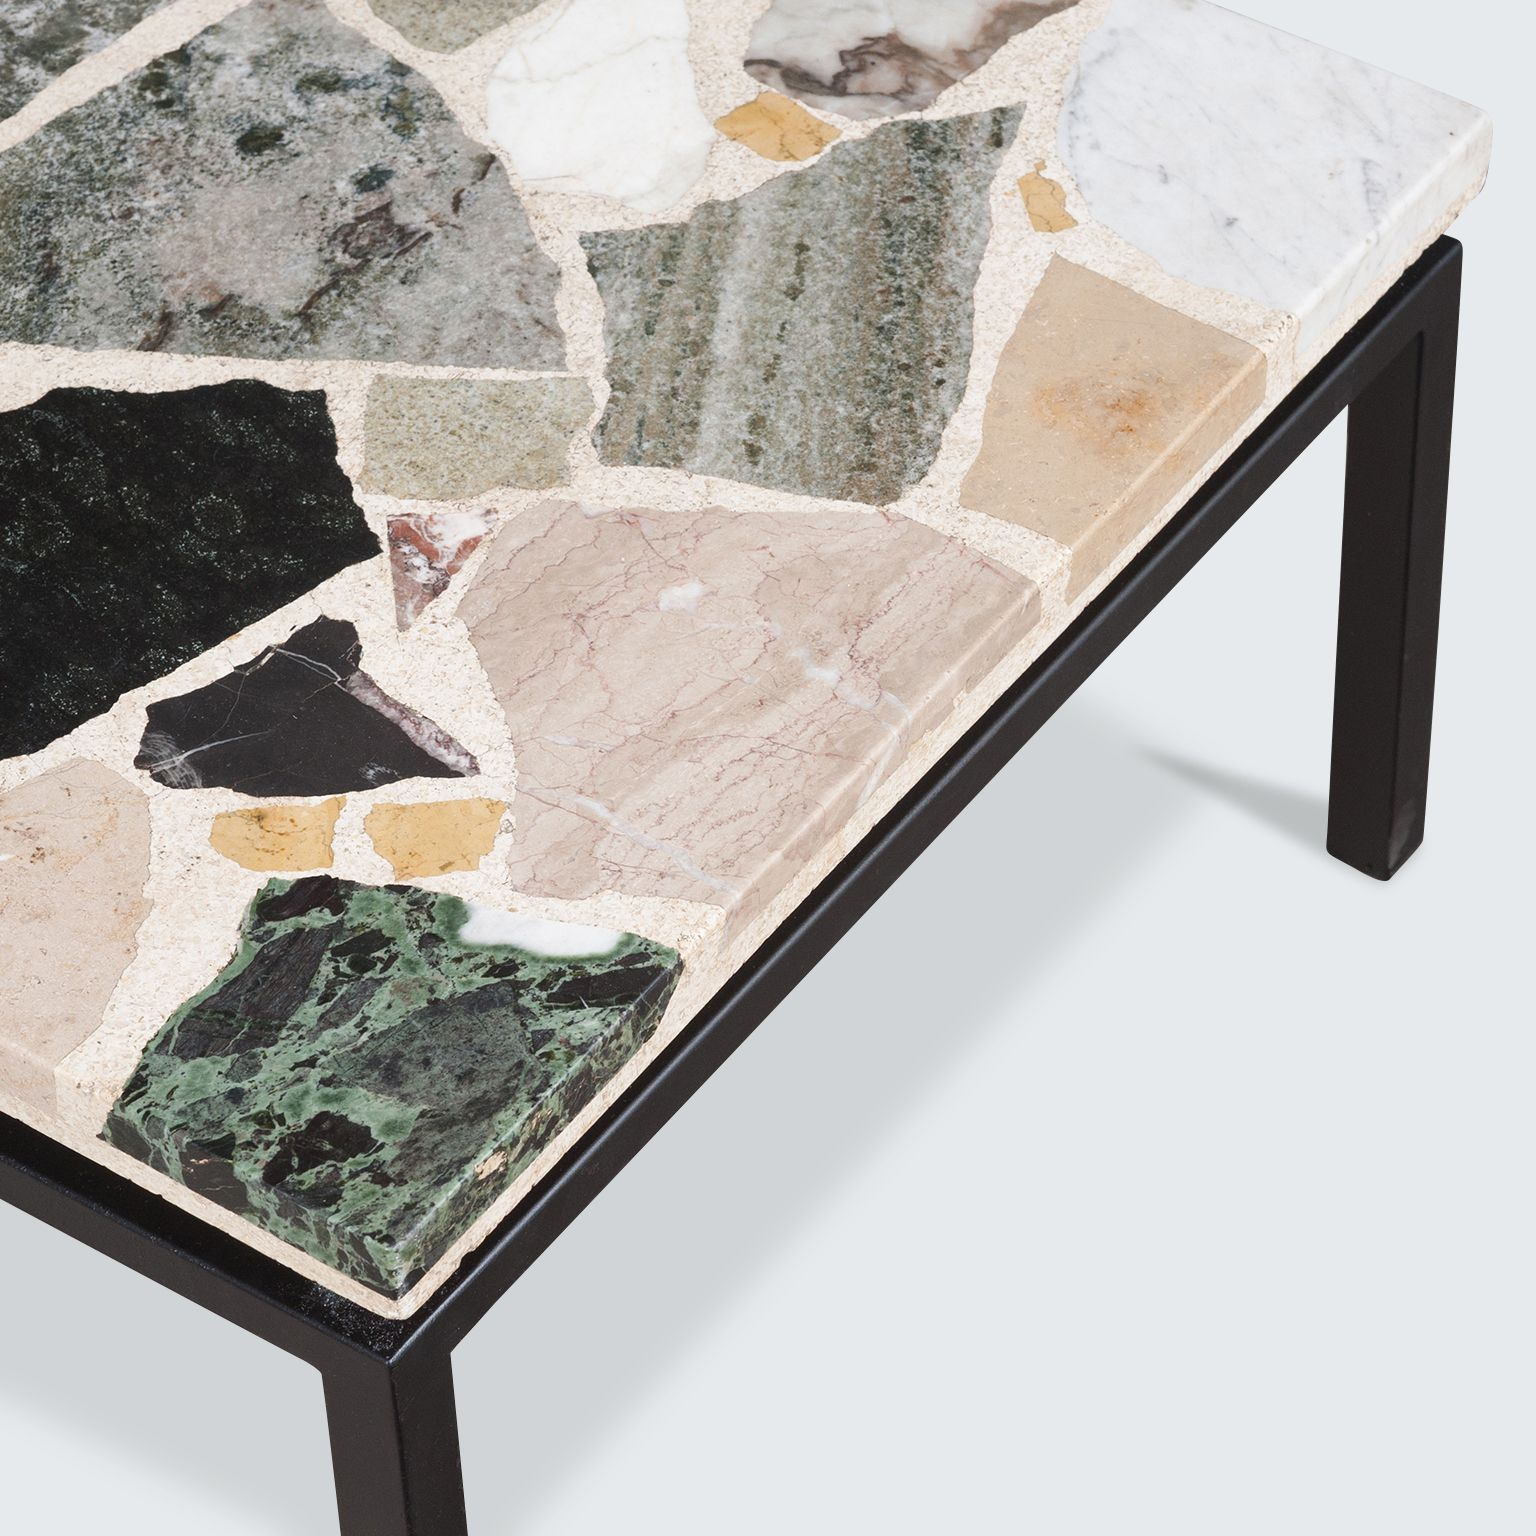 Perfect On Trend: Terrazzo Is Making A Major Comeback